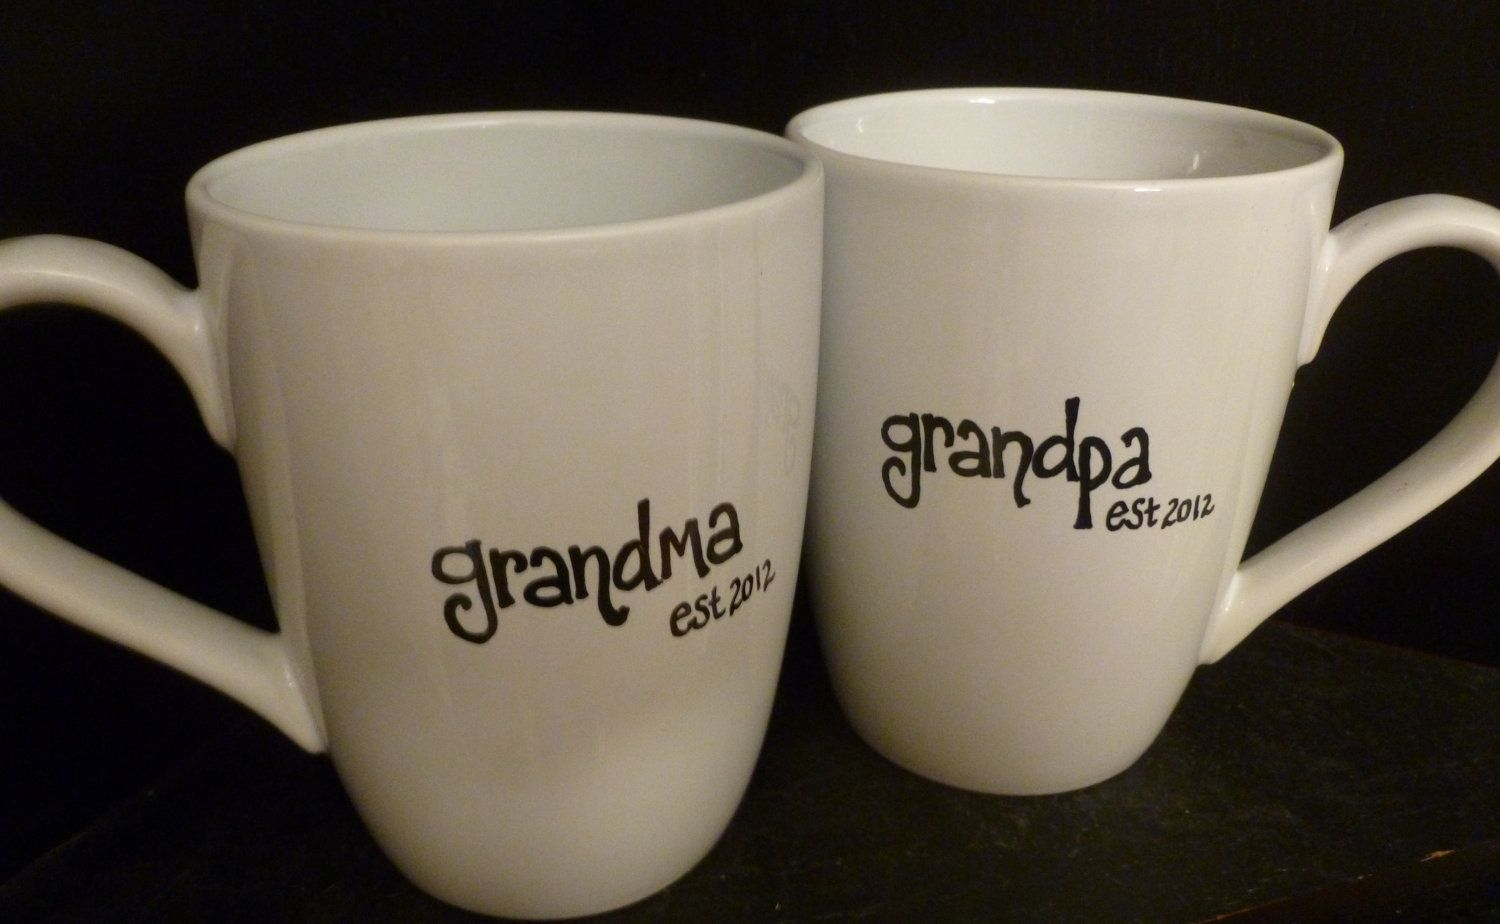 New GRANDMA or GRANDPA Mugs, Est. Year, Cute Pregnancy Announcement #newgrandma